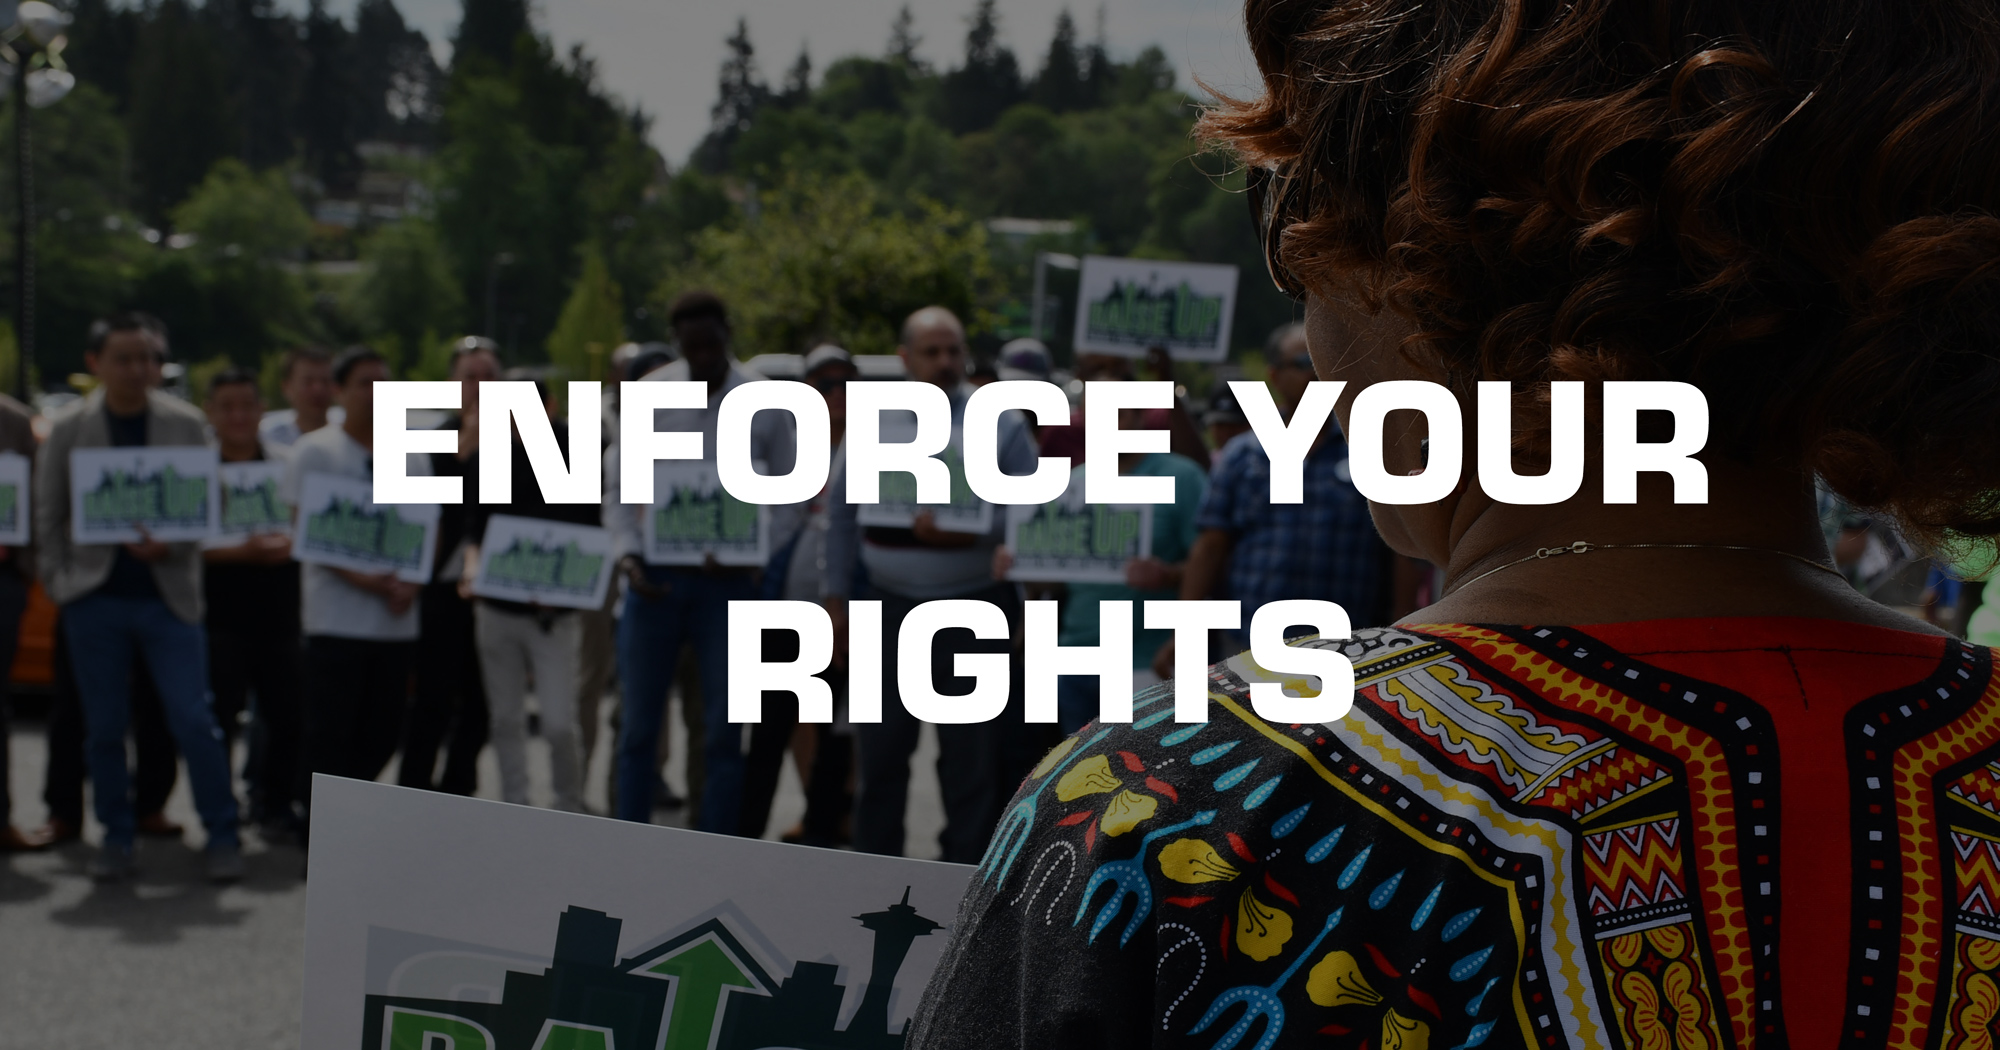 Enforce-Your-Rights2.jpg